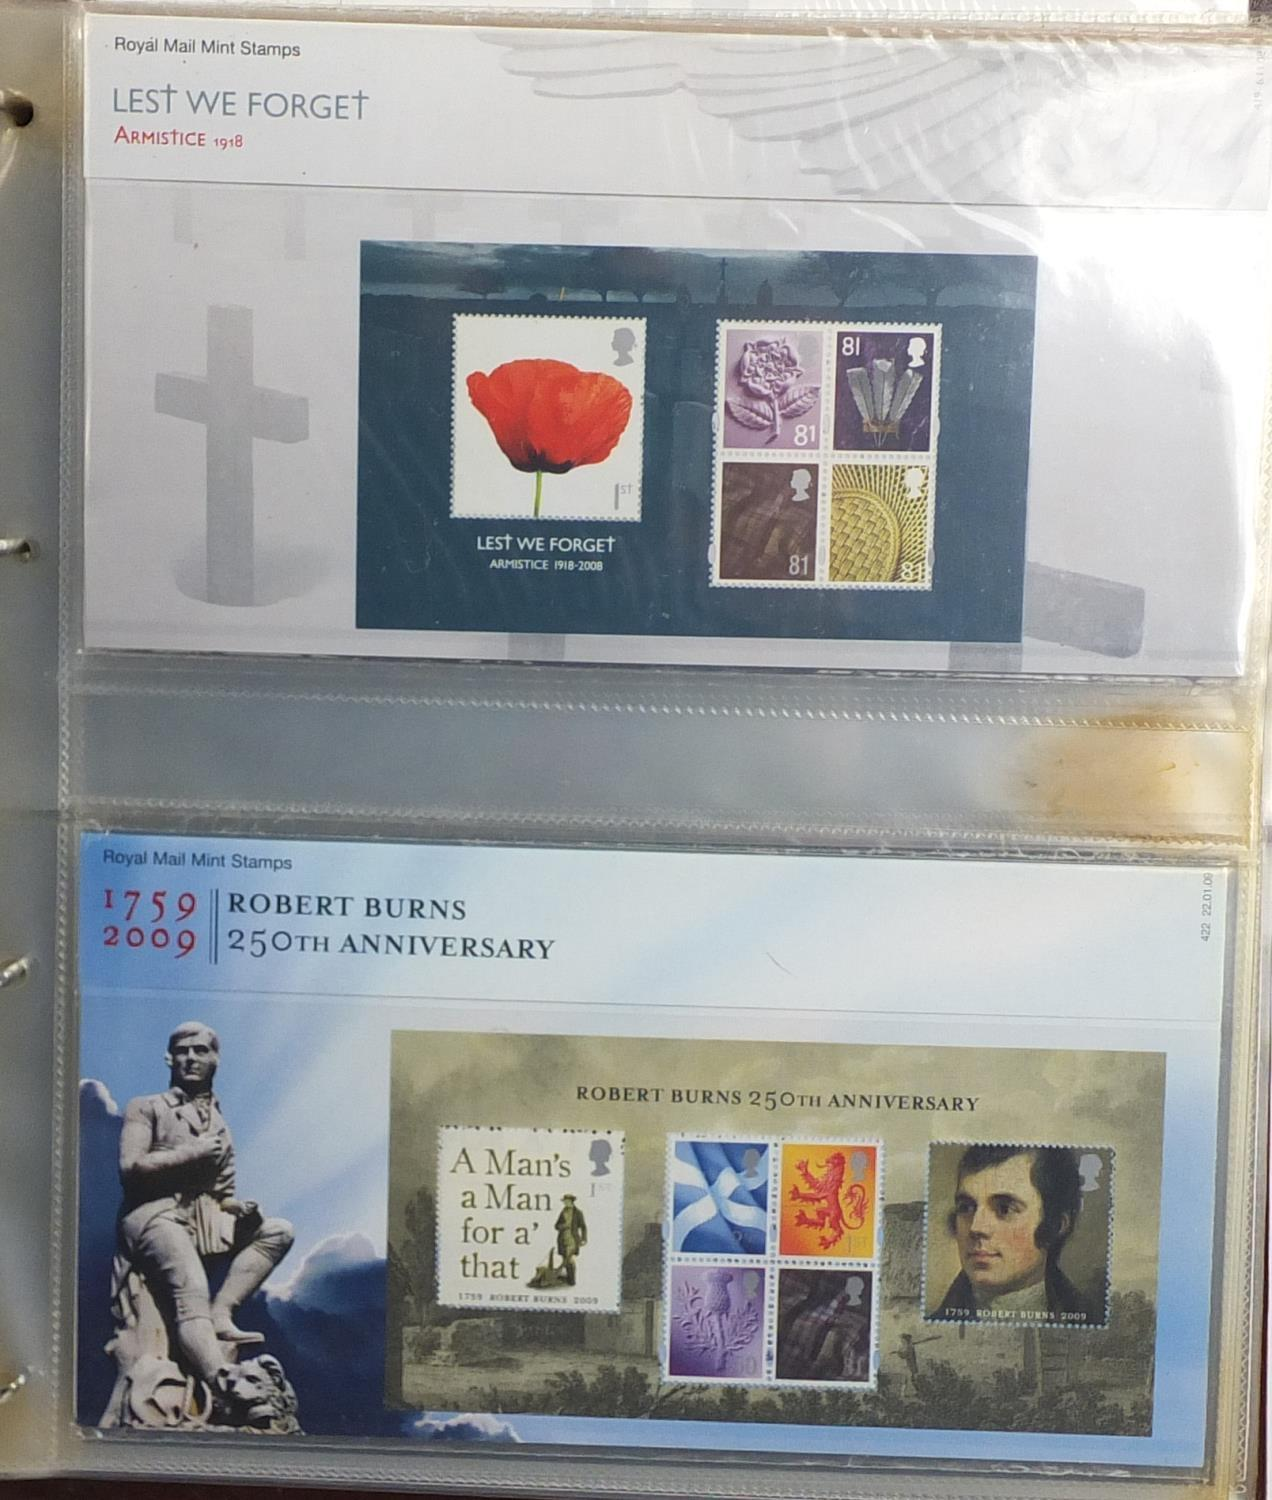 Lot 1050 - Royal Mail stamp presentation packs, arranged in an album : For Further Condition Reports Please